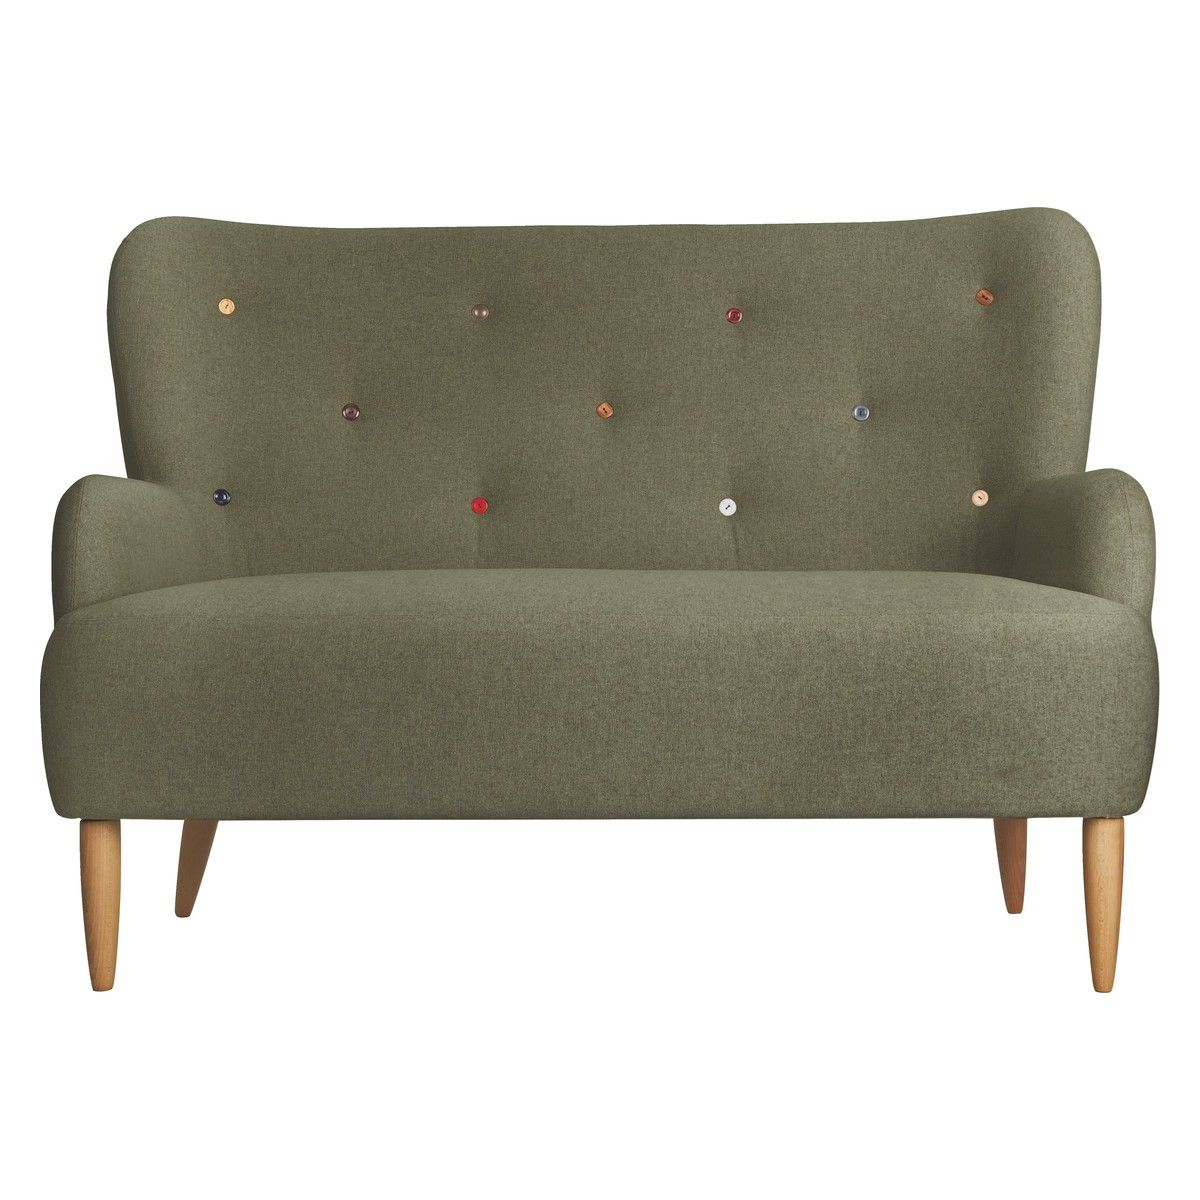 Wilmot Green Fabric 2 Seater Sofa With Multi Coloured